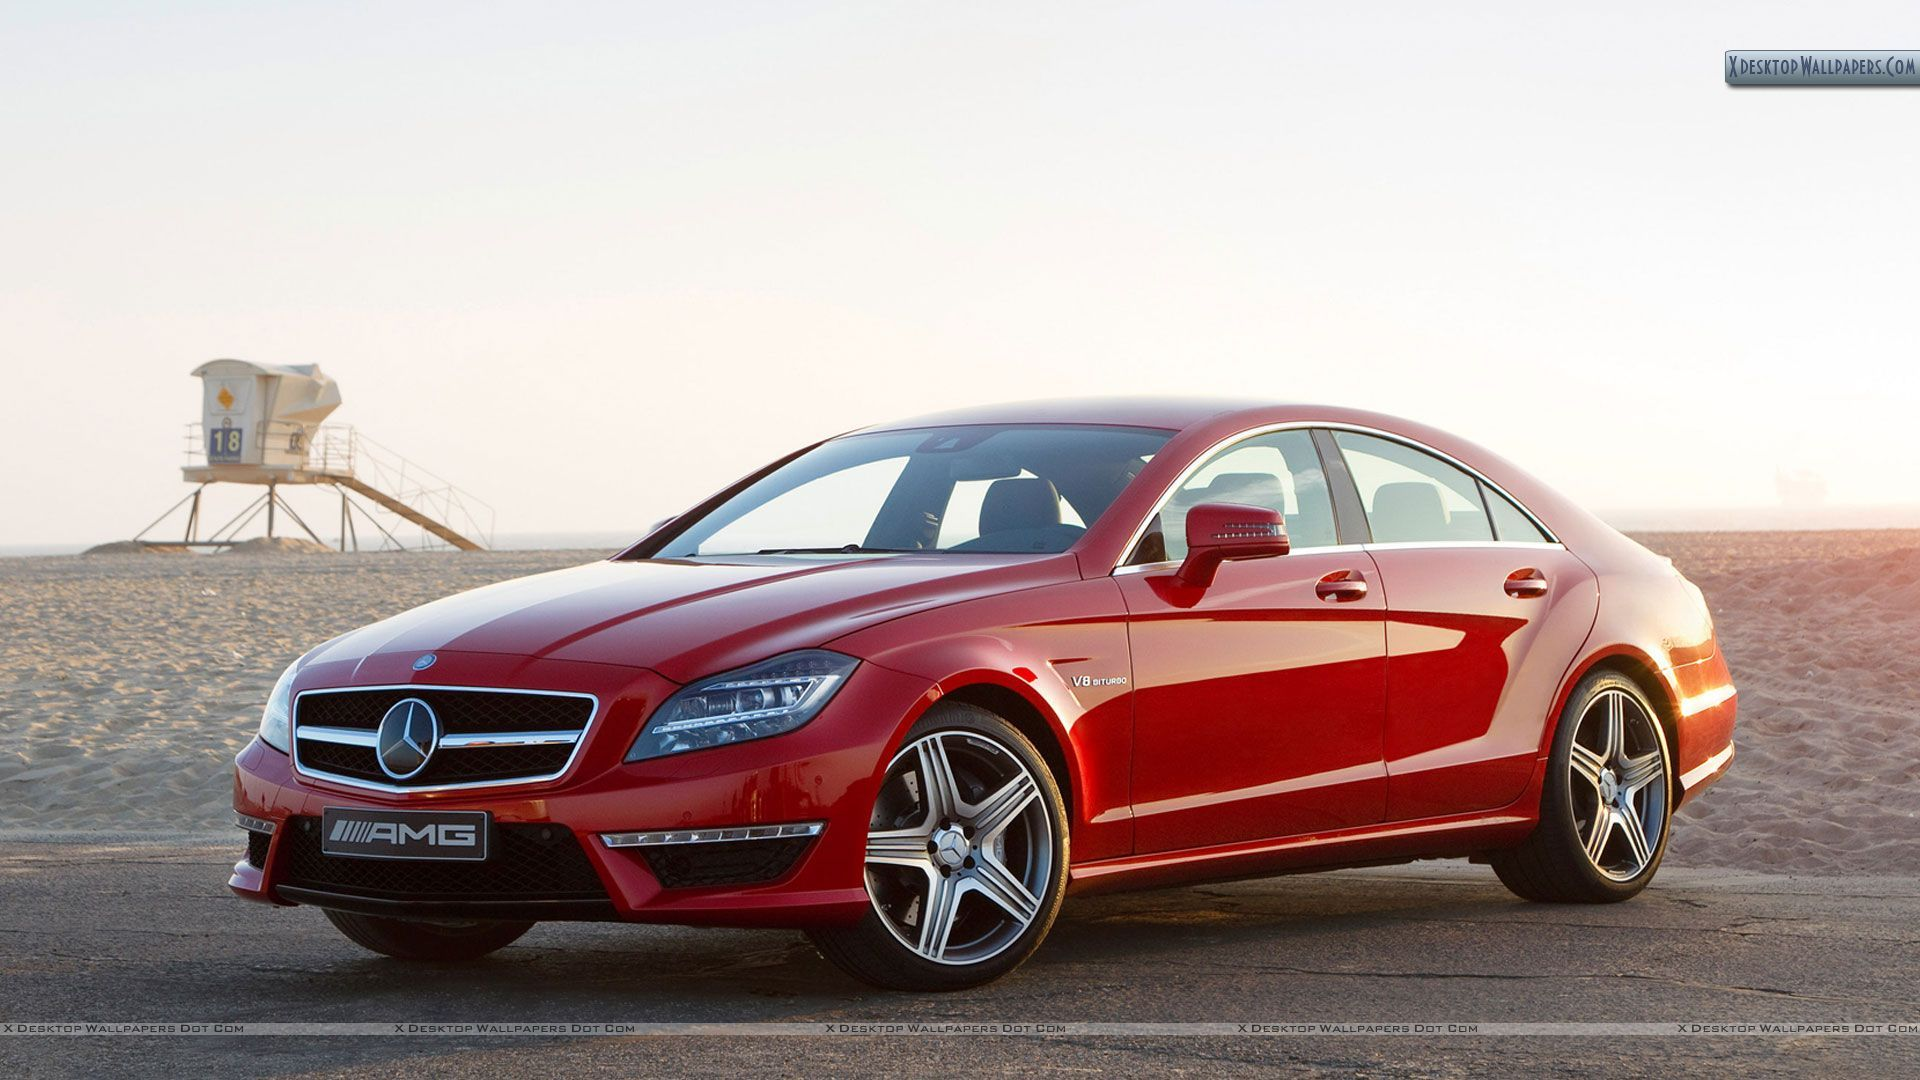 Image Detail For 2012 Mercedes Benz Cls63 Amg Red Color Wallpaper